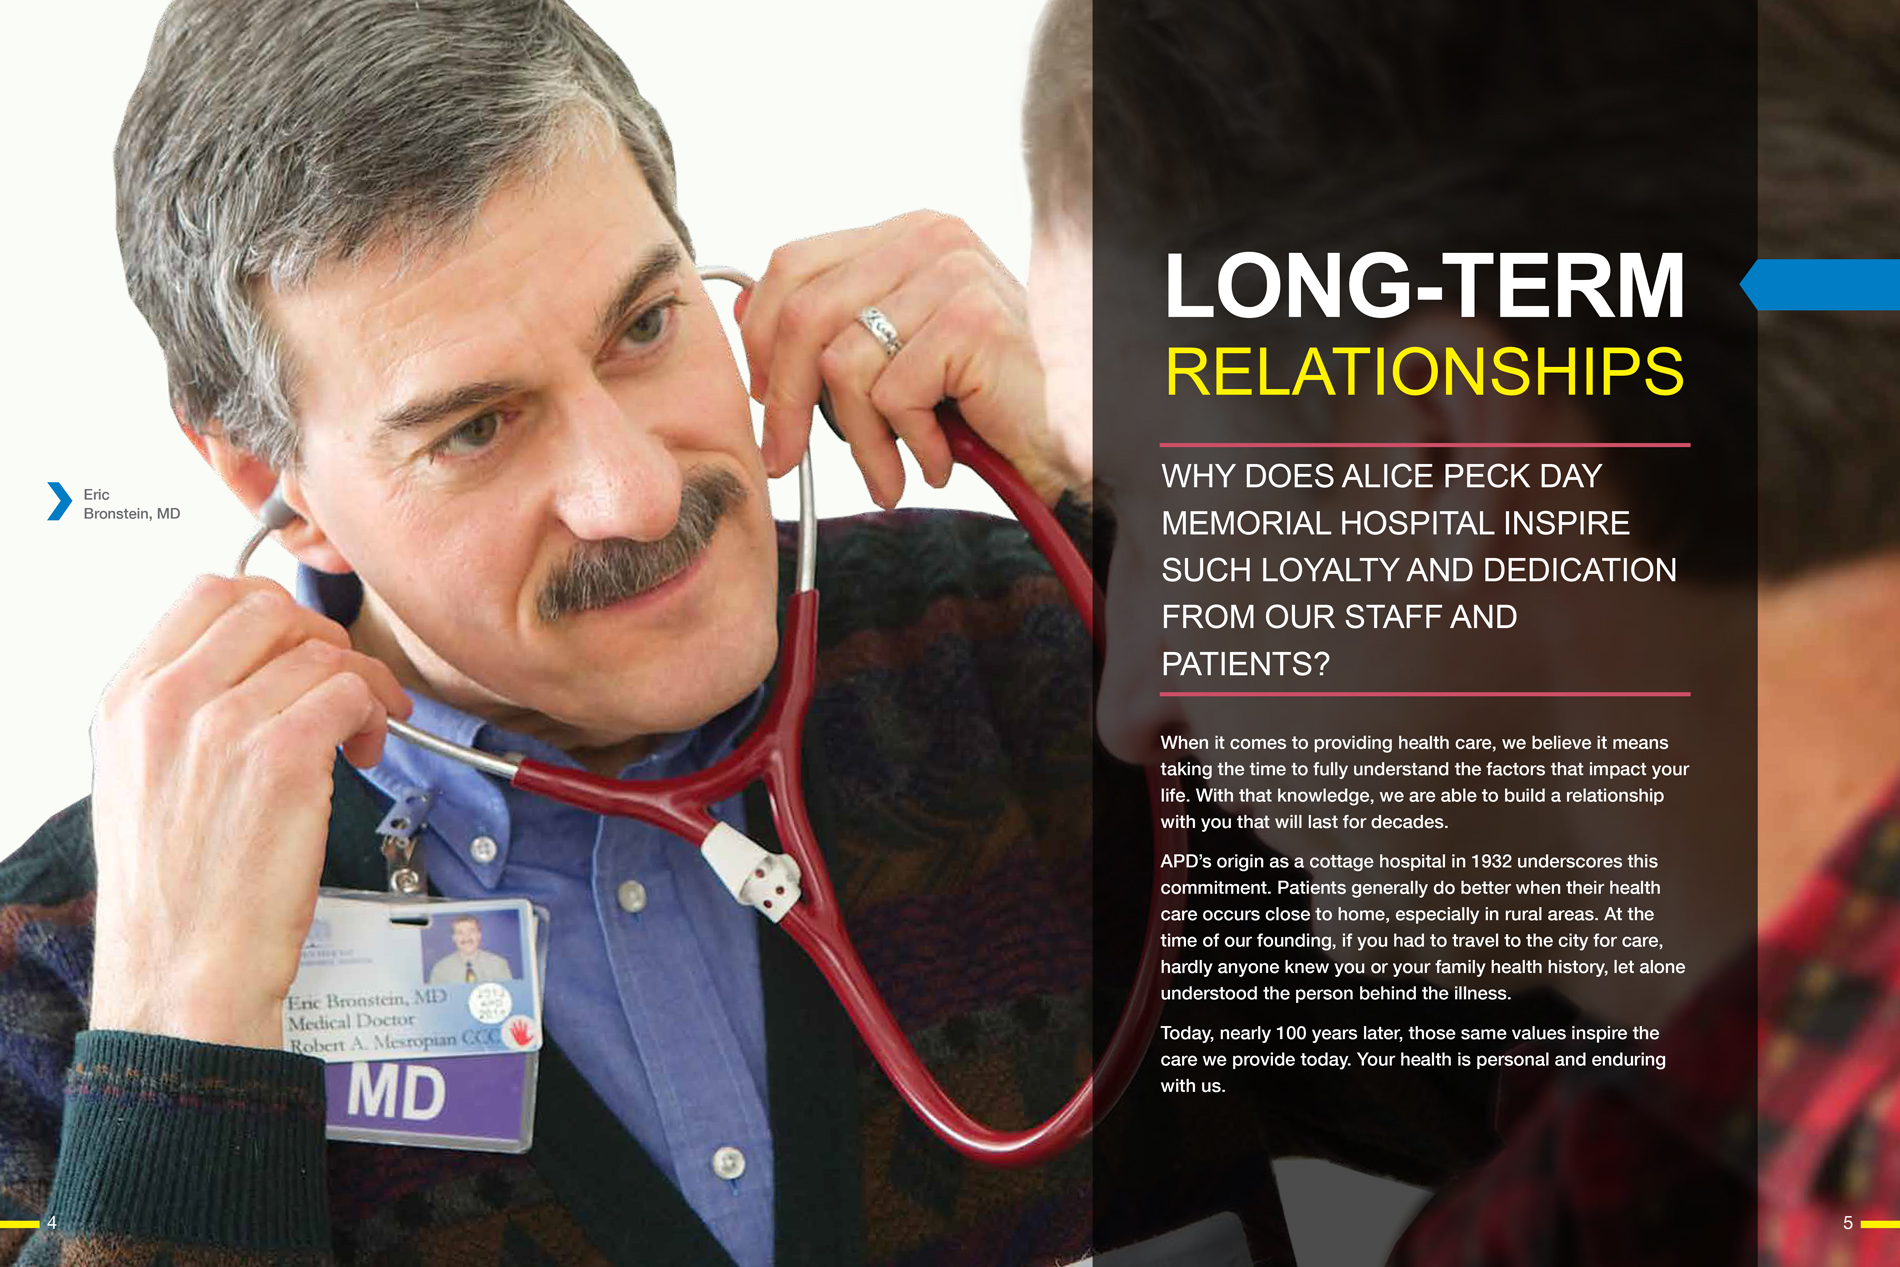 Spread from the APD prospectus brochure showing Dr. Bronstein